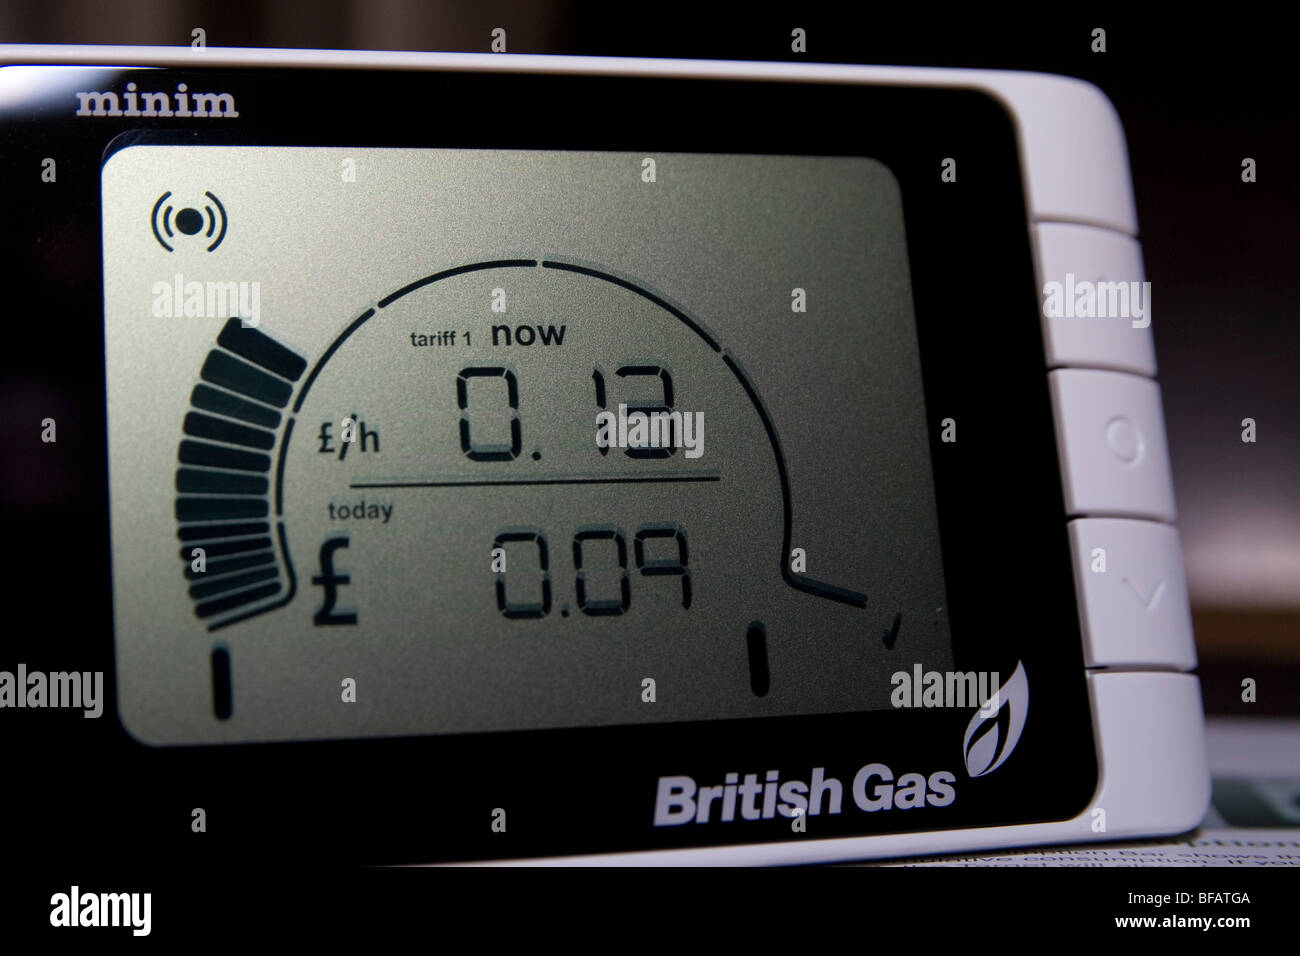 A British Gas Smart Meter made by Minim - Stock Image